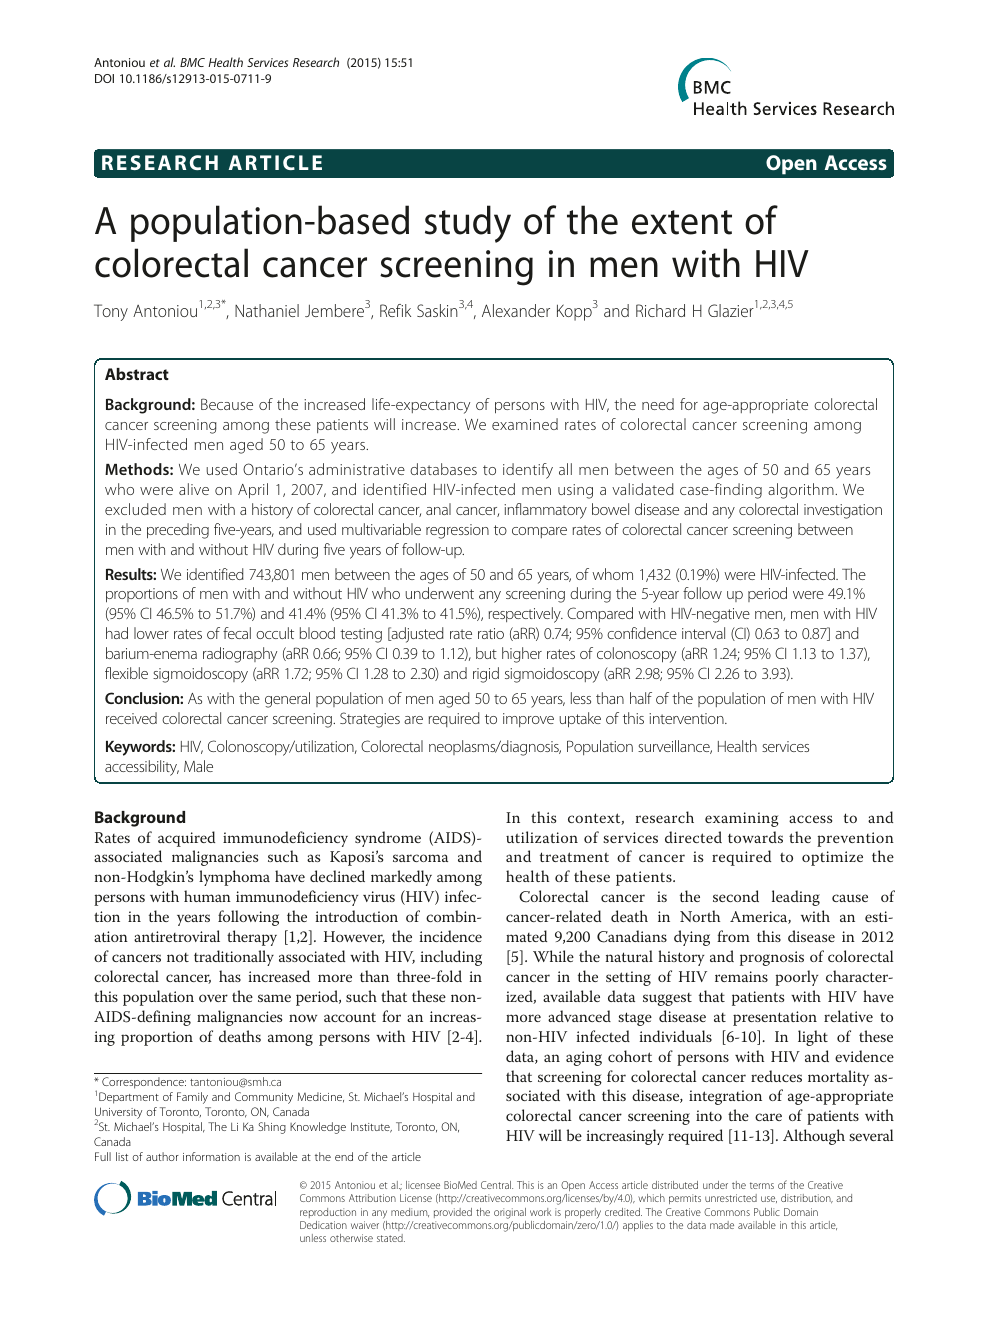 A Population Based Study Of The Extent Of Colorectal Cancer Screening In Men With Hiv Topic Of Research Paper In Clinical Medicine Download Scholarly Article Pdf And Read For Free On Cyberleninka